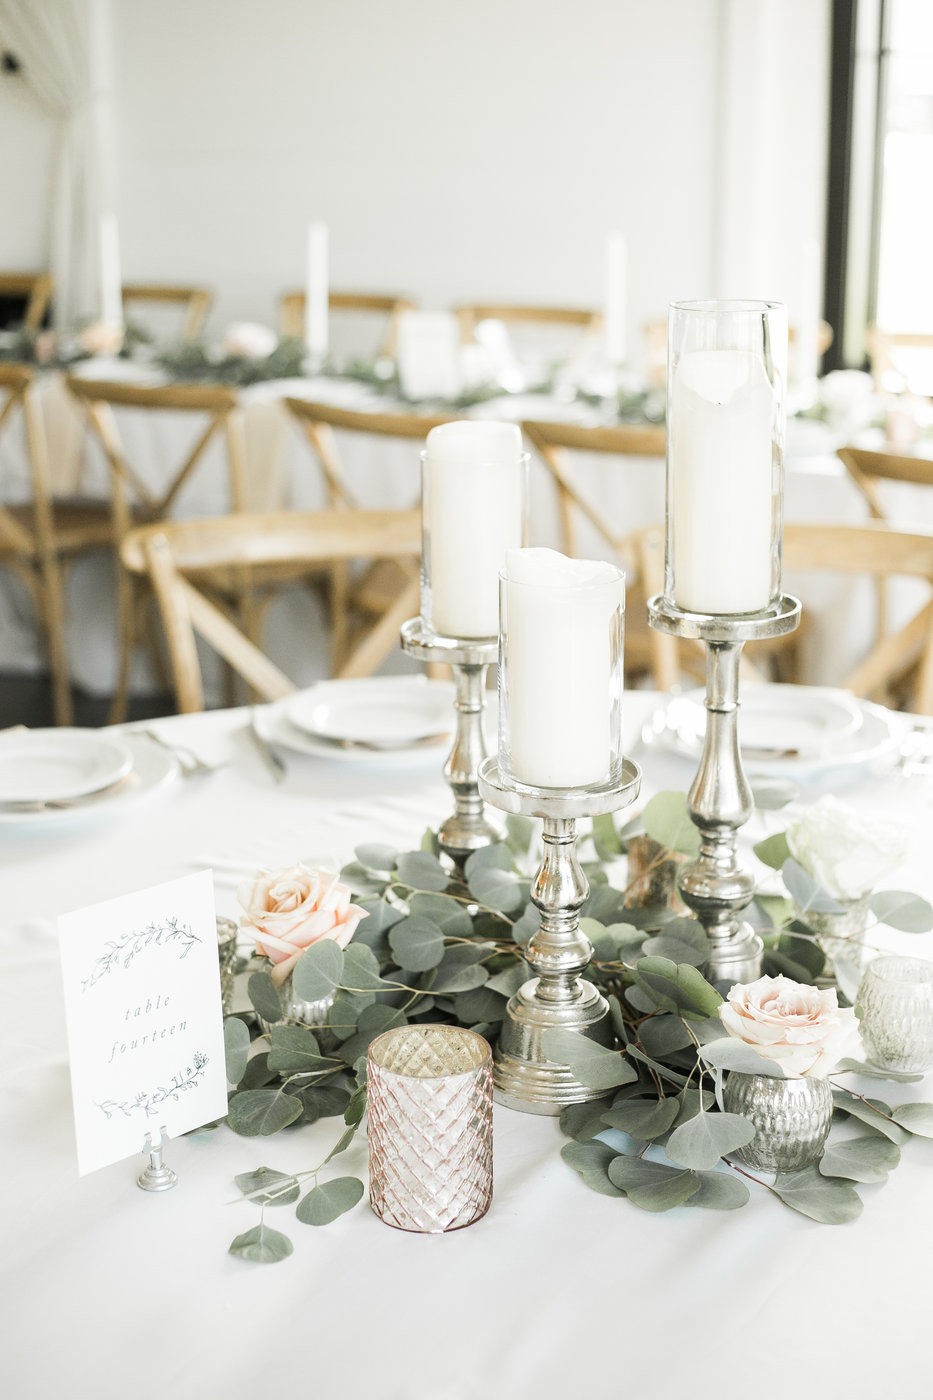 elegant greenery centerpiece with roses with silver athena candlesticks and candles by studio bloom iowa at ashton hill farm